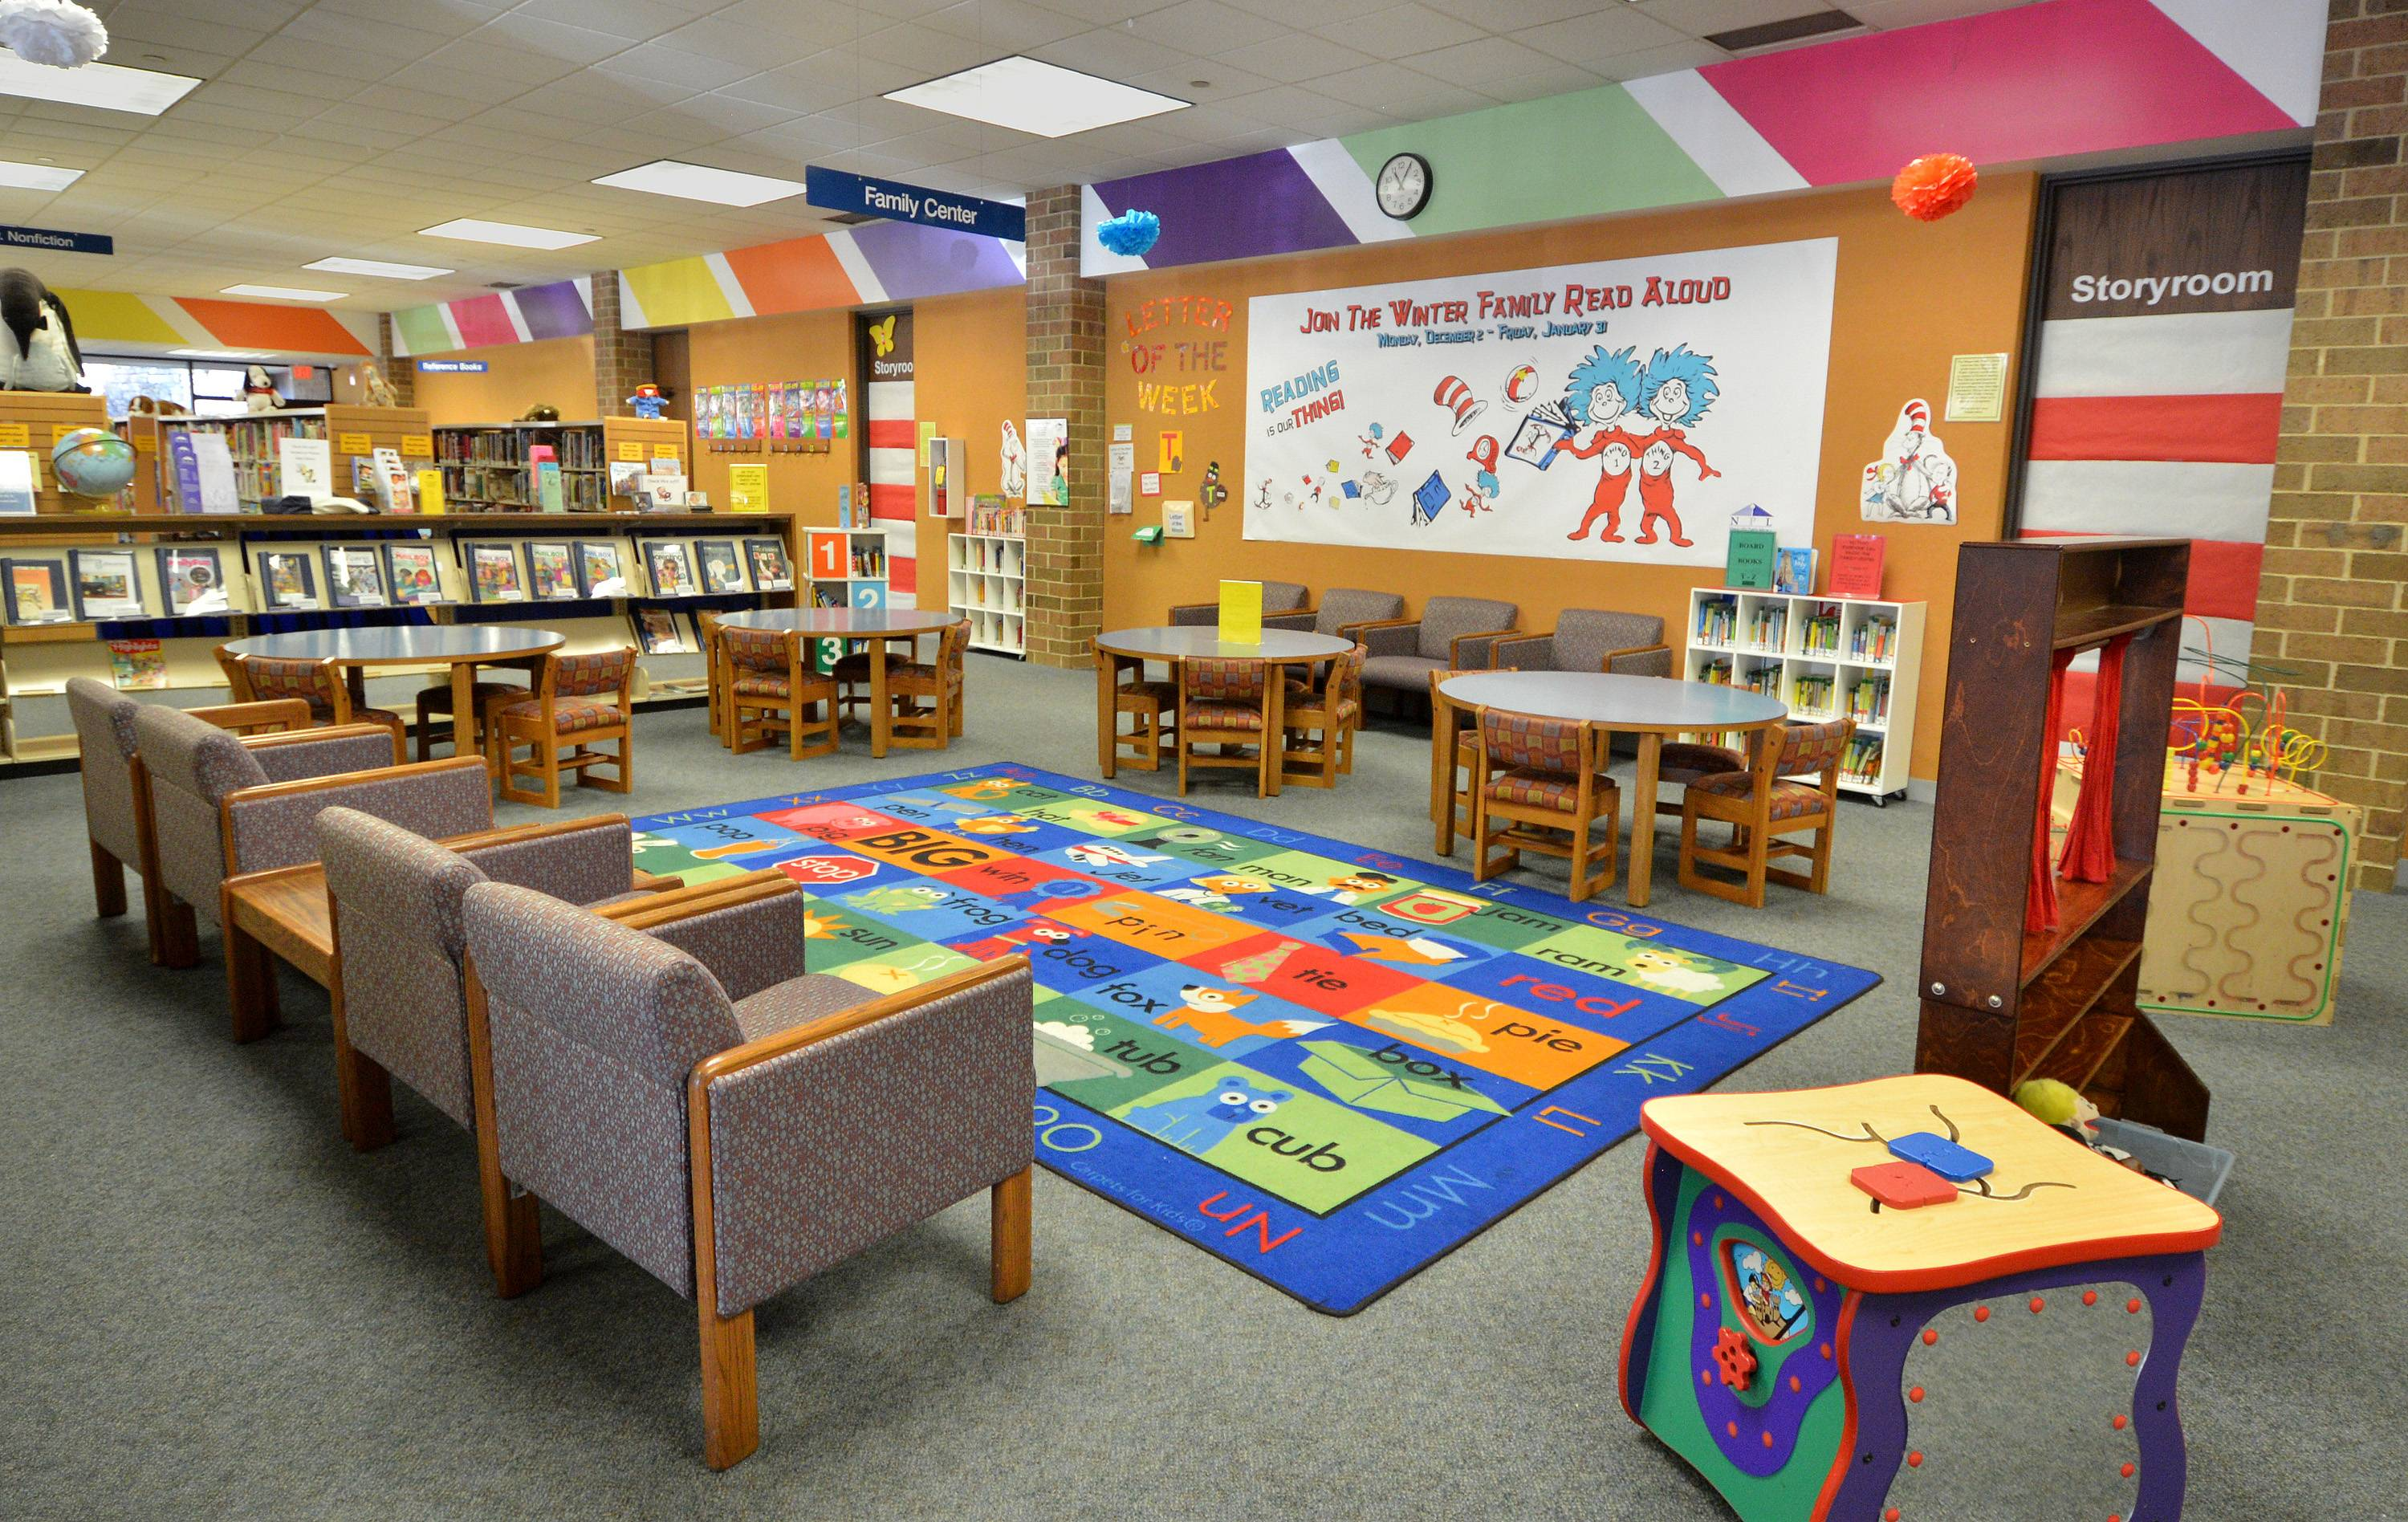 Cash flow quirk helping library projects in Naperville